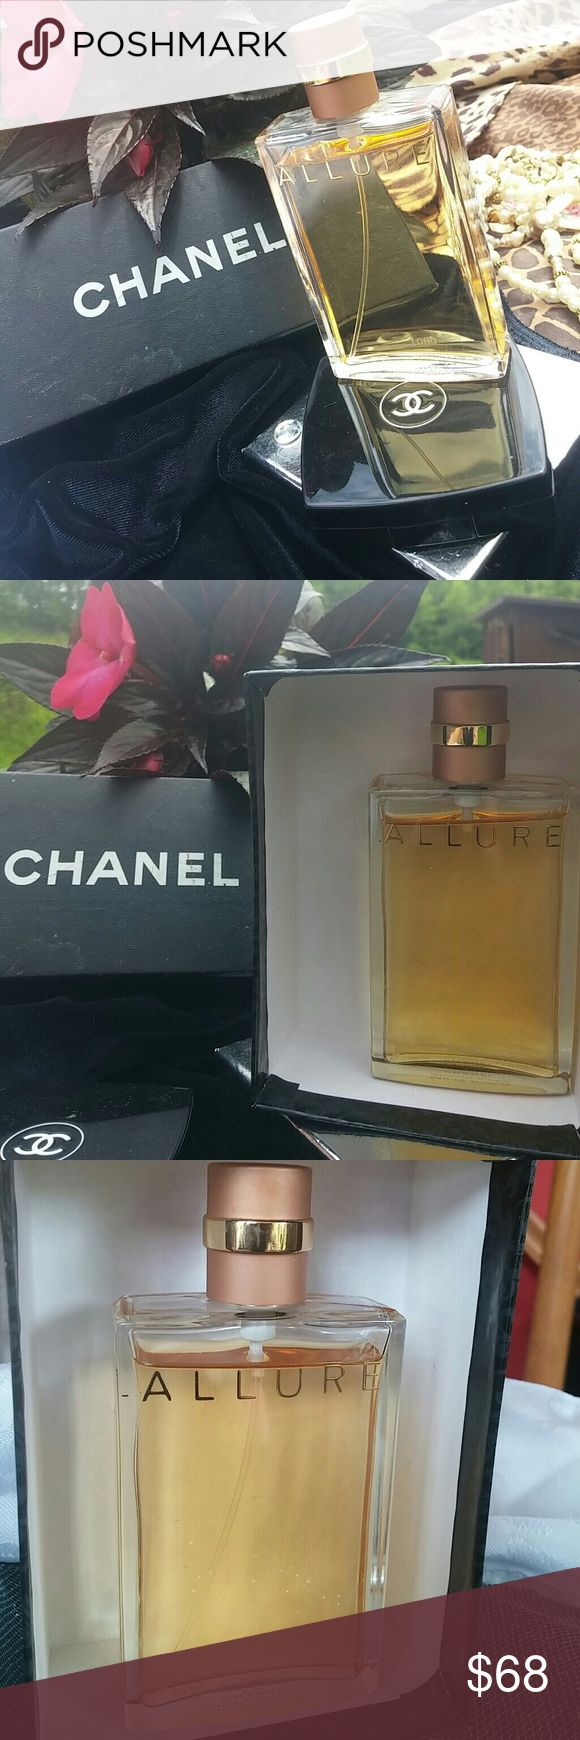 Authentic CHANEL Allure Perfume Clean and sheer, warm and sexy authentic Chanel Allure perfume. Difficult to define; impossible to resist.  An elegant and luxurious spray. Only a few sprays used and a lot more left. Bottle size 50ml. 1.7 fl. oz. Made in Paris. CHANEL Accessories